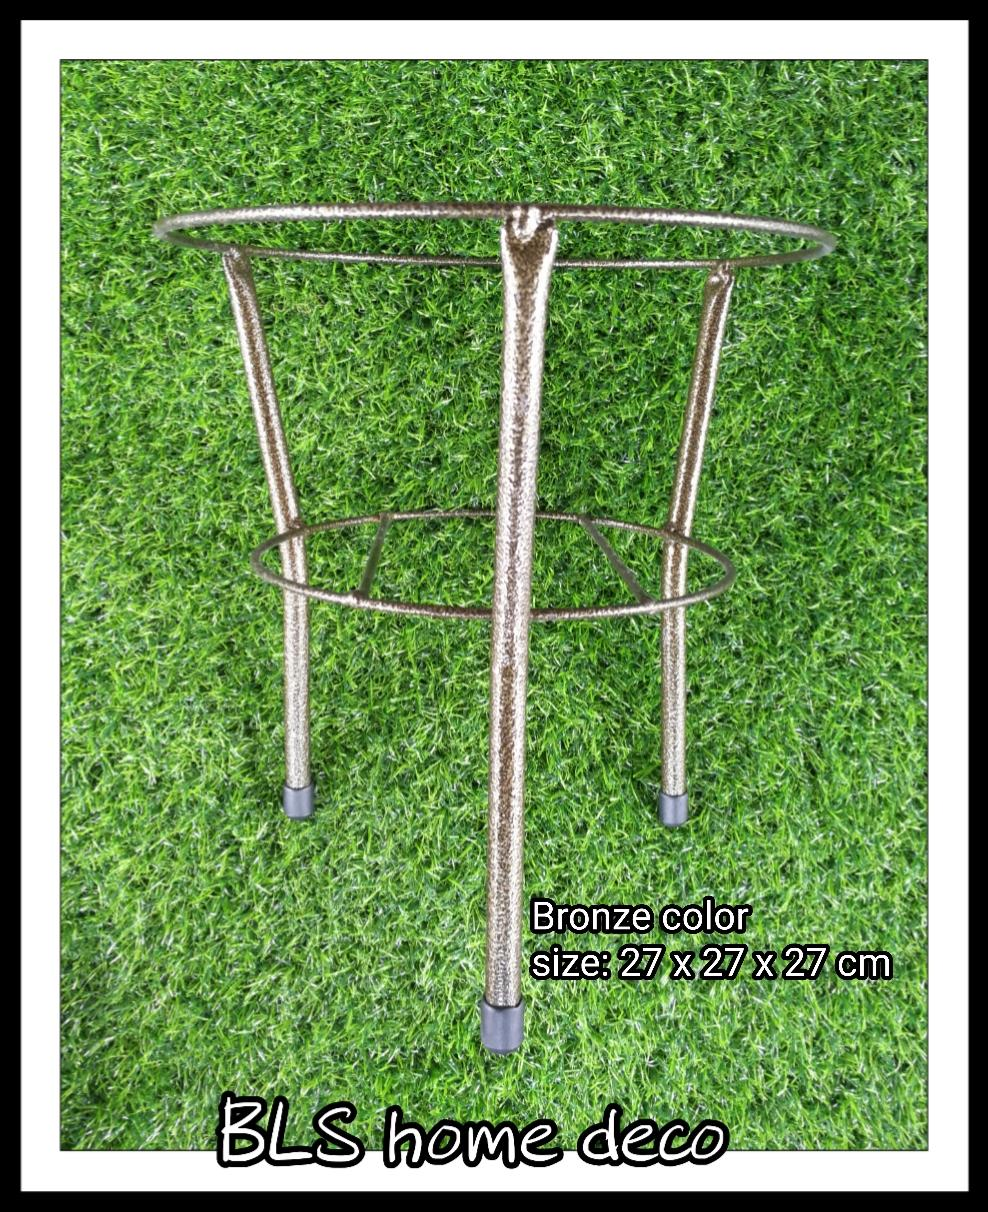 H 27 CM TKH IRON FLOWER POT STAND PLANTS GARDEN DEOCRATION RACK